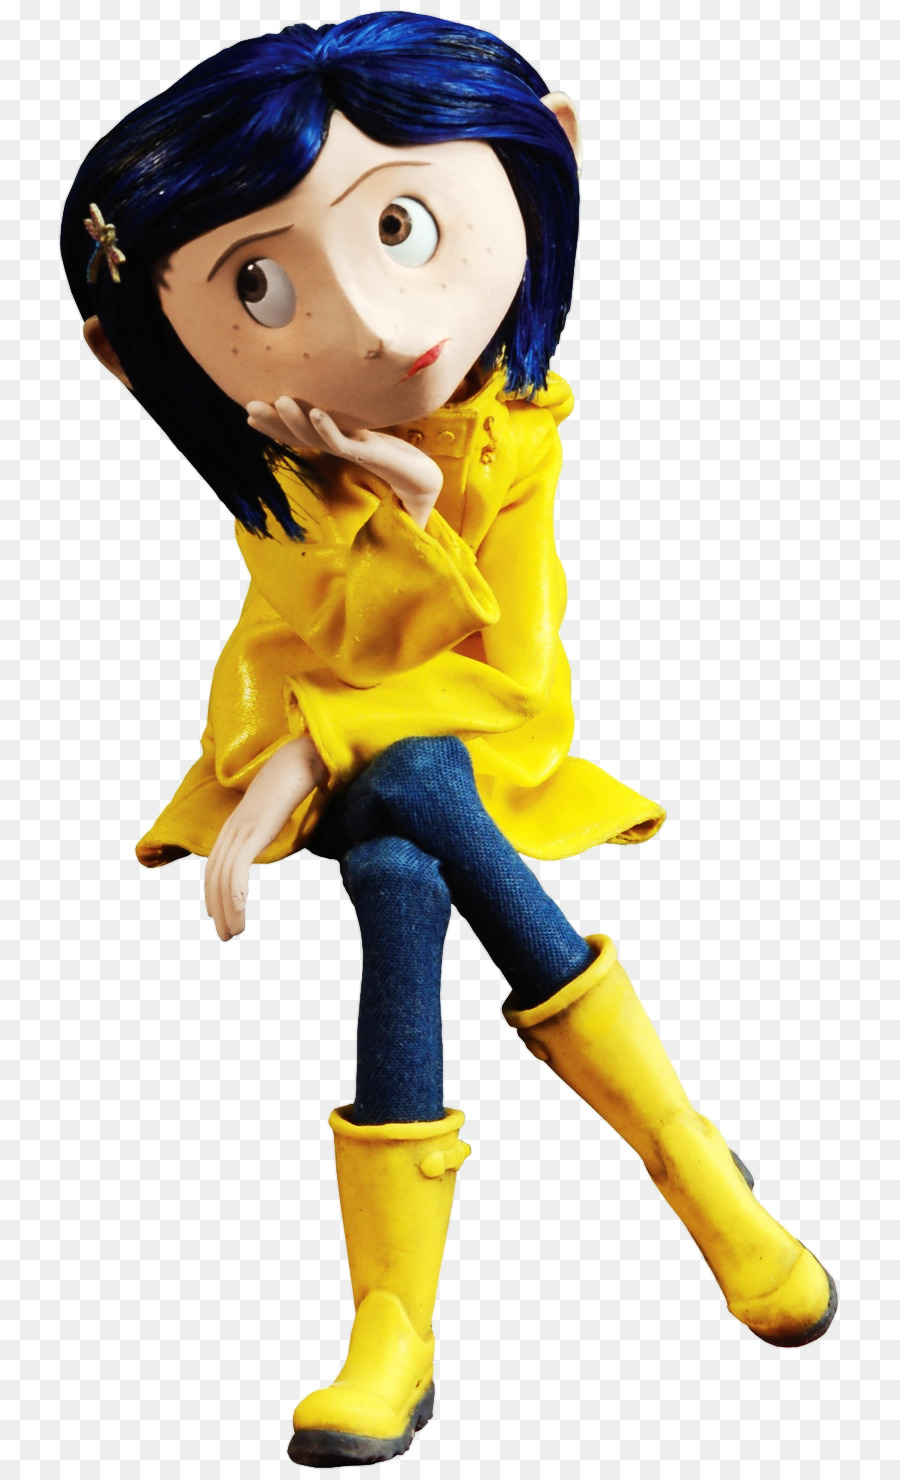 Coraline Jones Toy Png Download 790 1474 Free Transparent Coraline Jones Png Download Cleanpng Kisspng